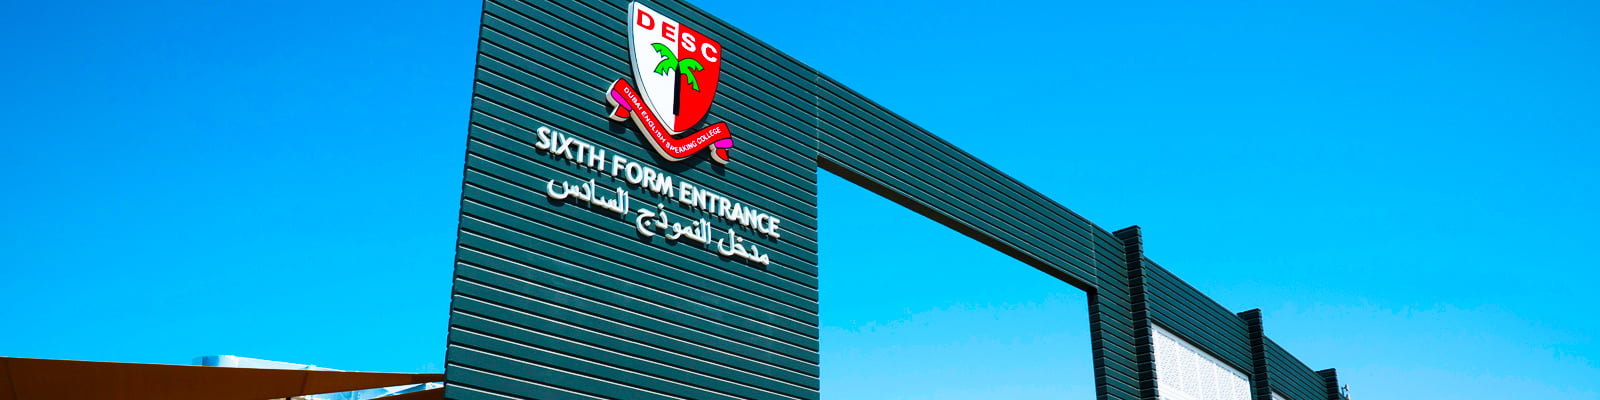 New Sixth Form buildings at Dubai English Speaking College DESC replicate the feel of British universities.